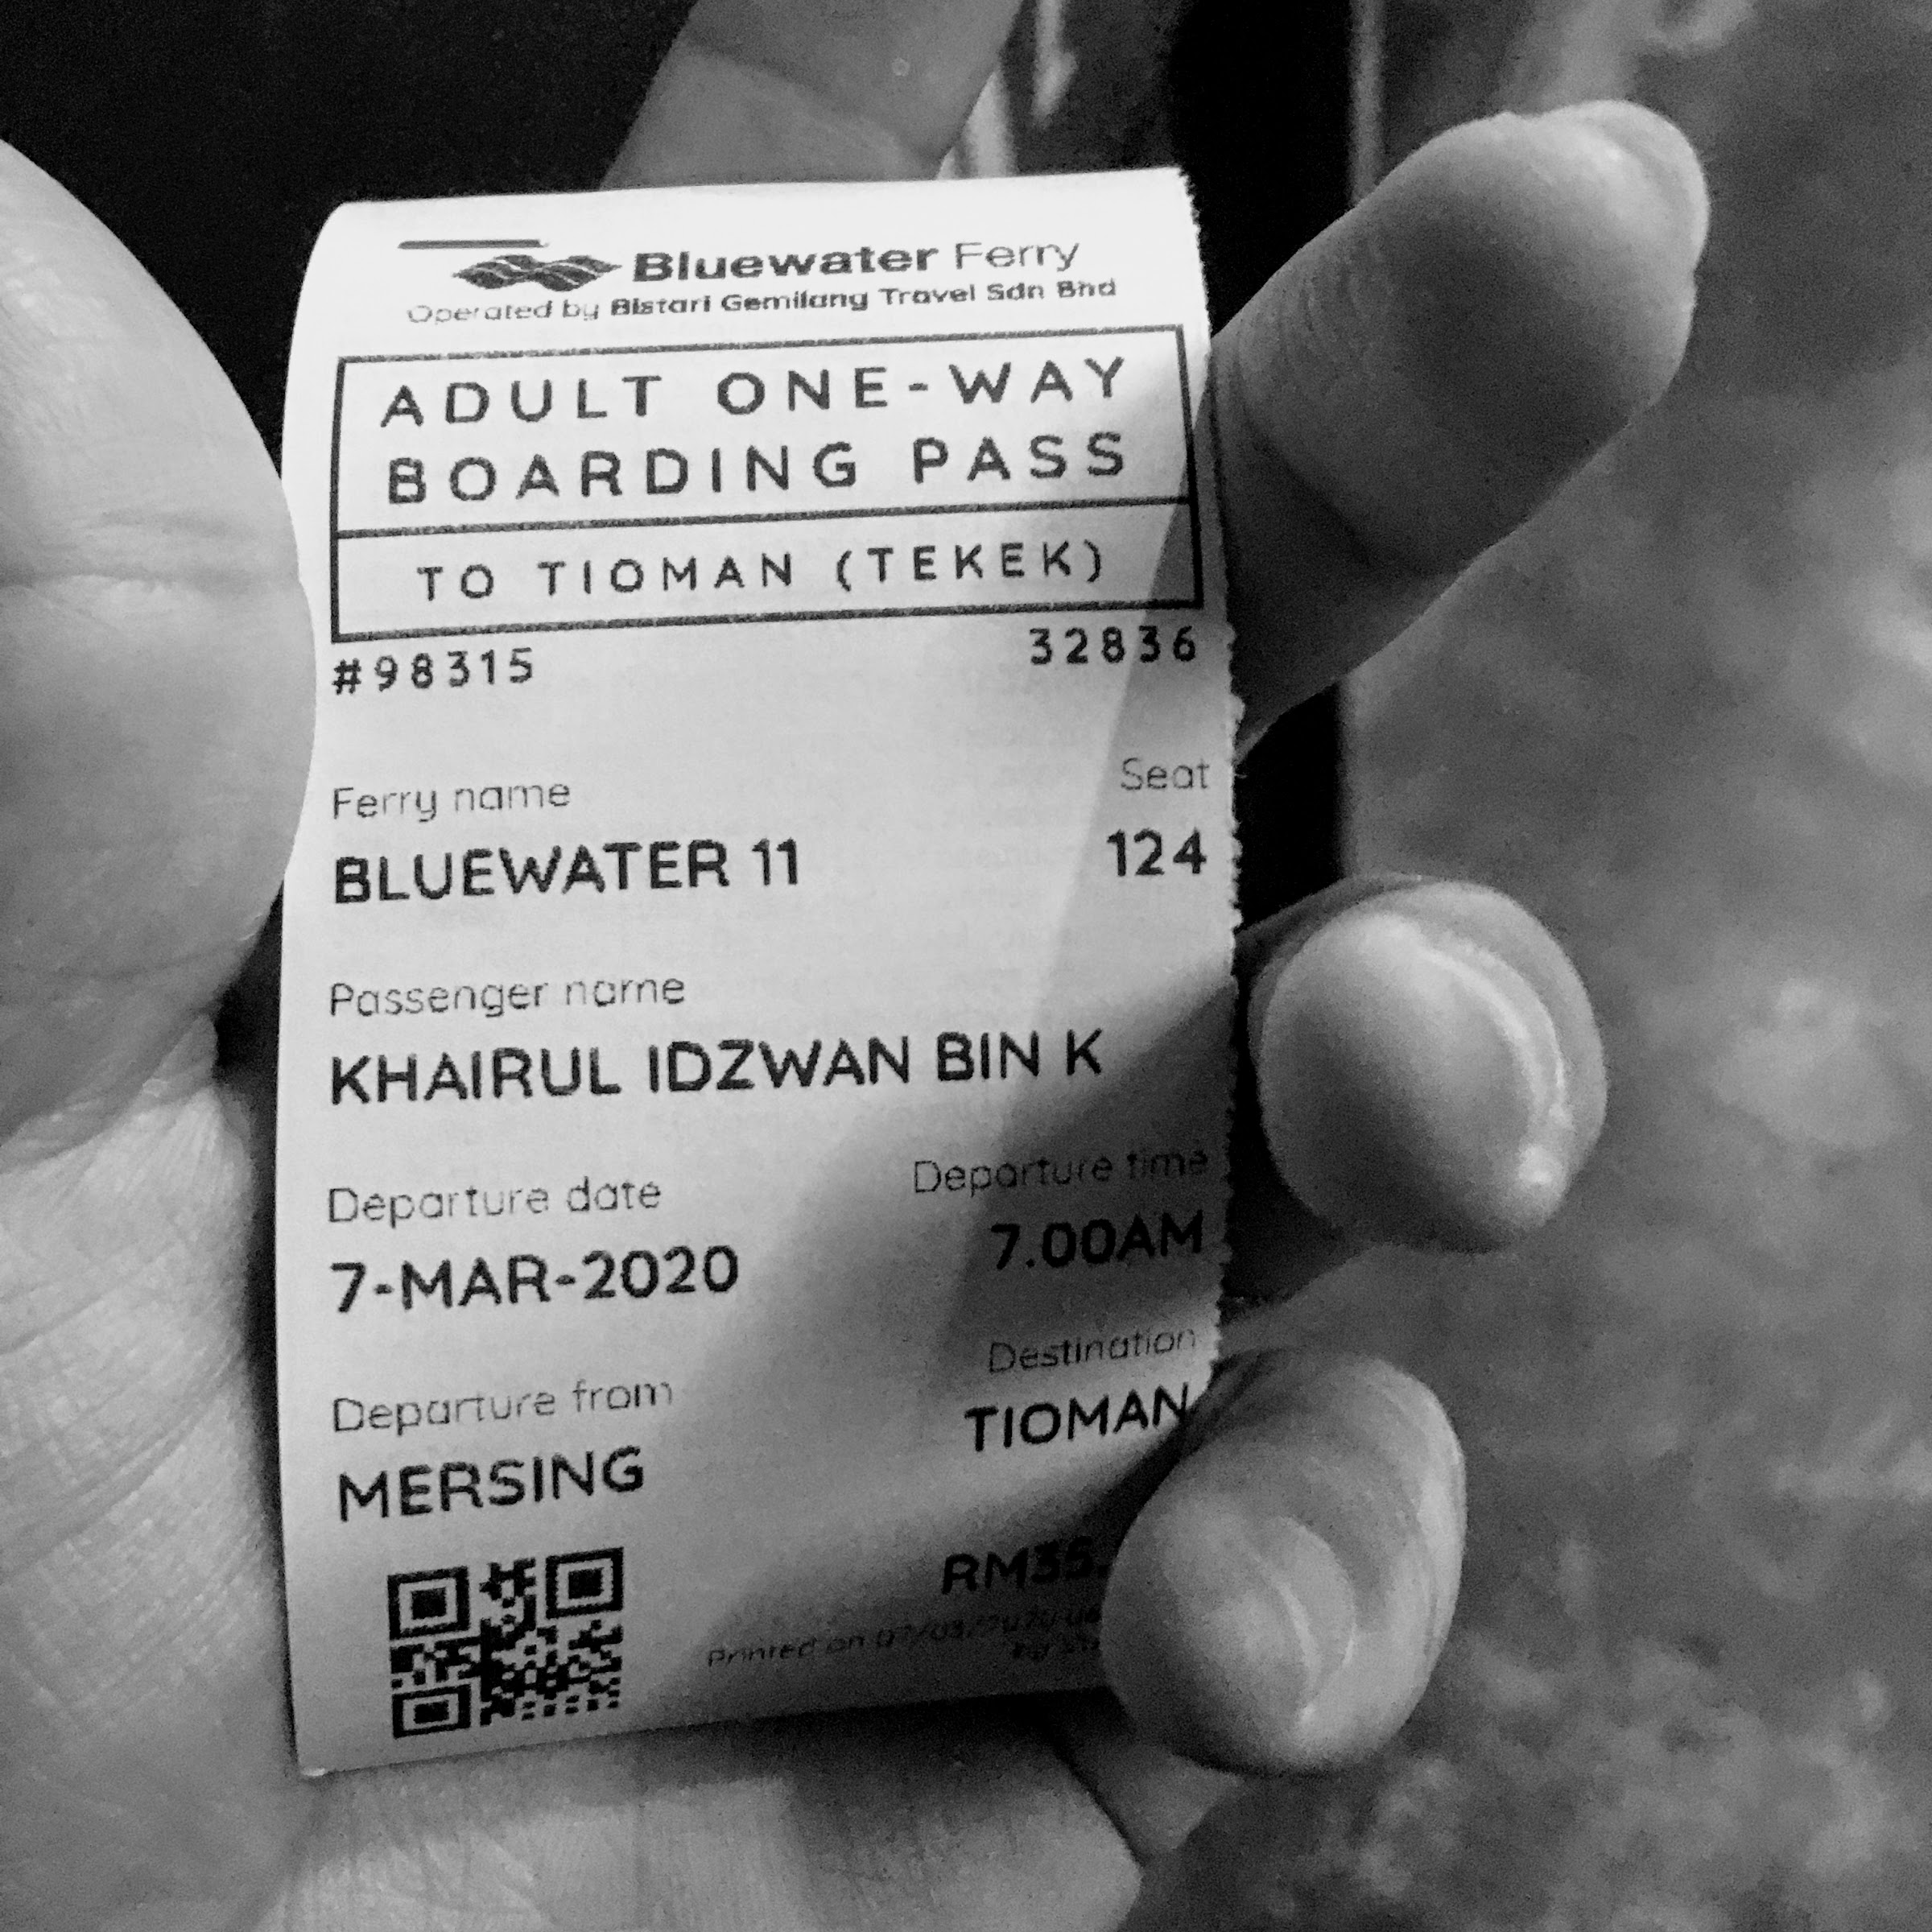 Bluewater Ferry ticket